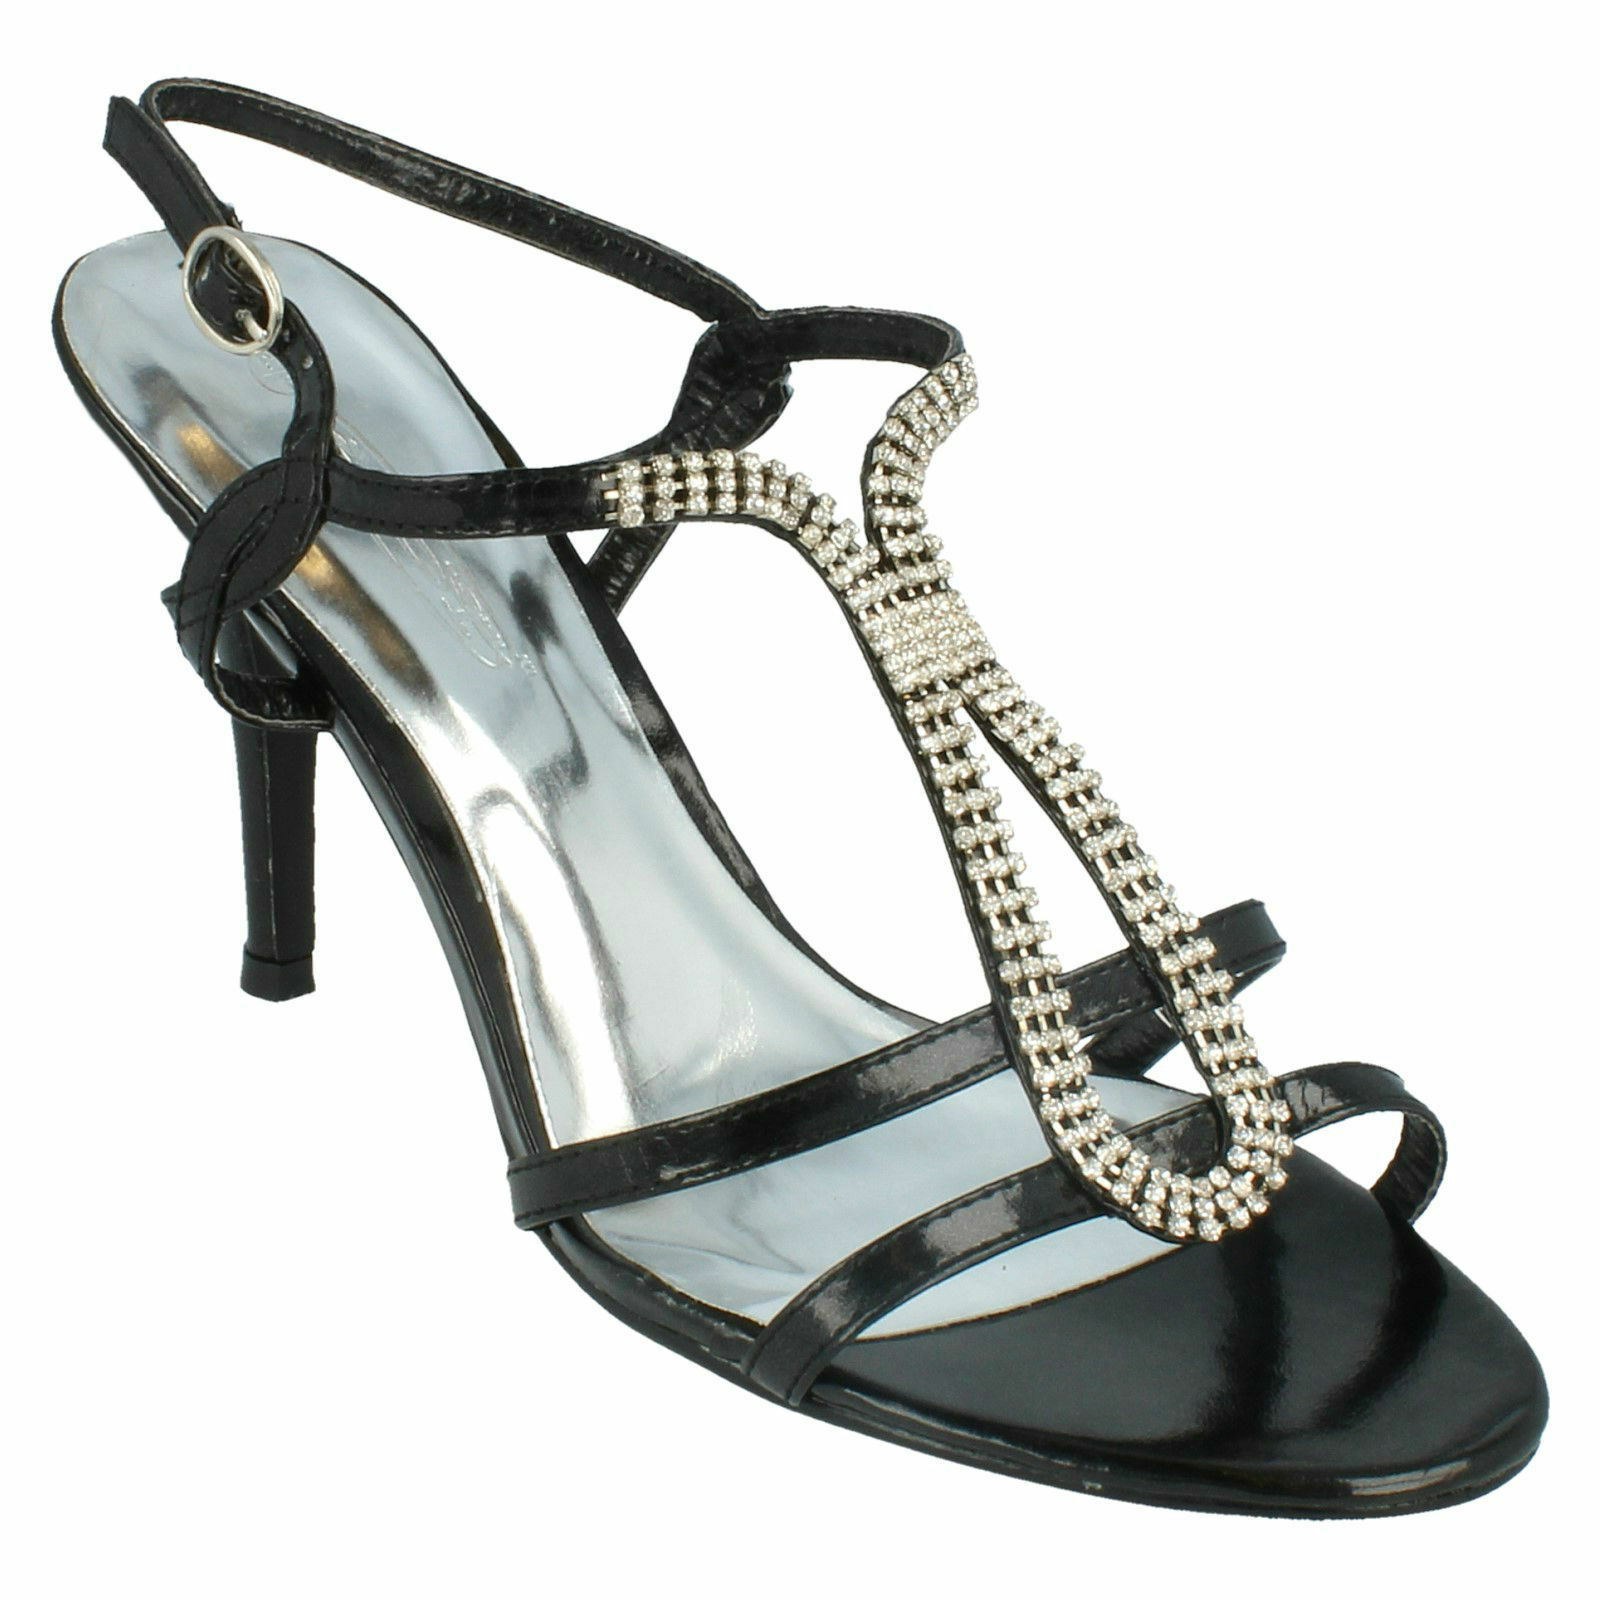 SALE LADIES SPOT ON F1690 DIAMANTE STRAPPY SLING BACK  HIGH HEEL EVENING SANDALS